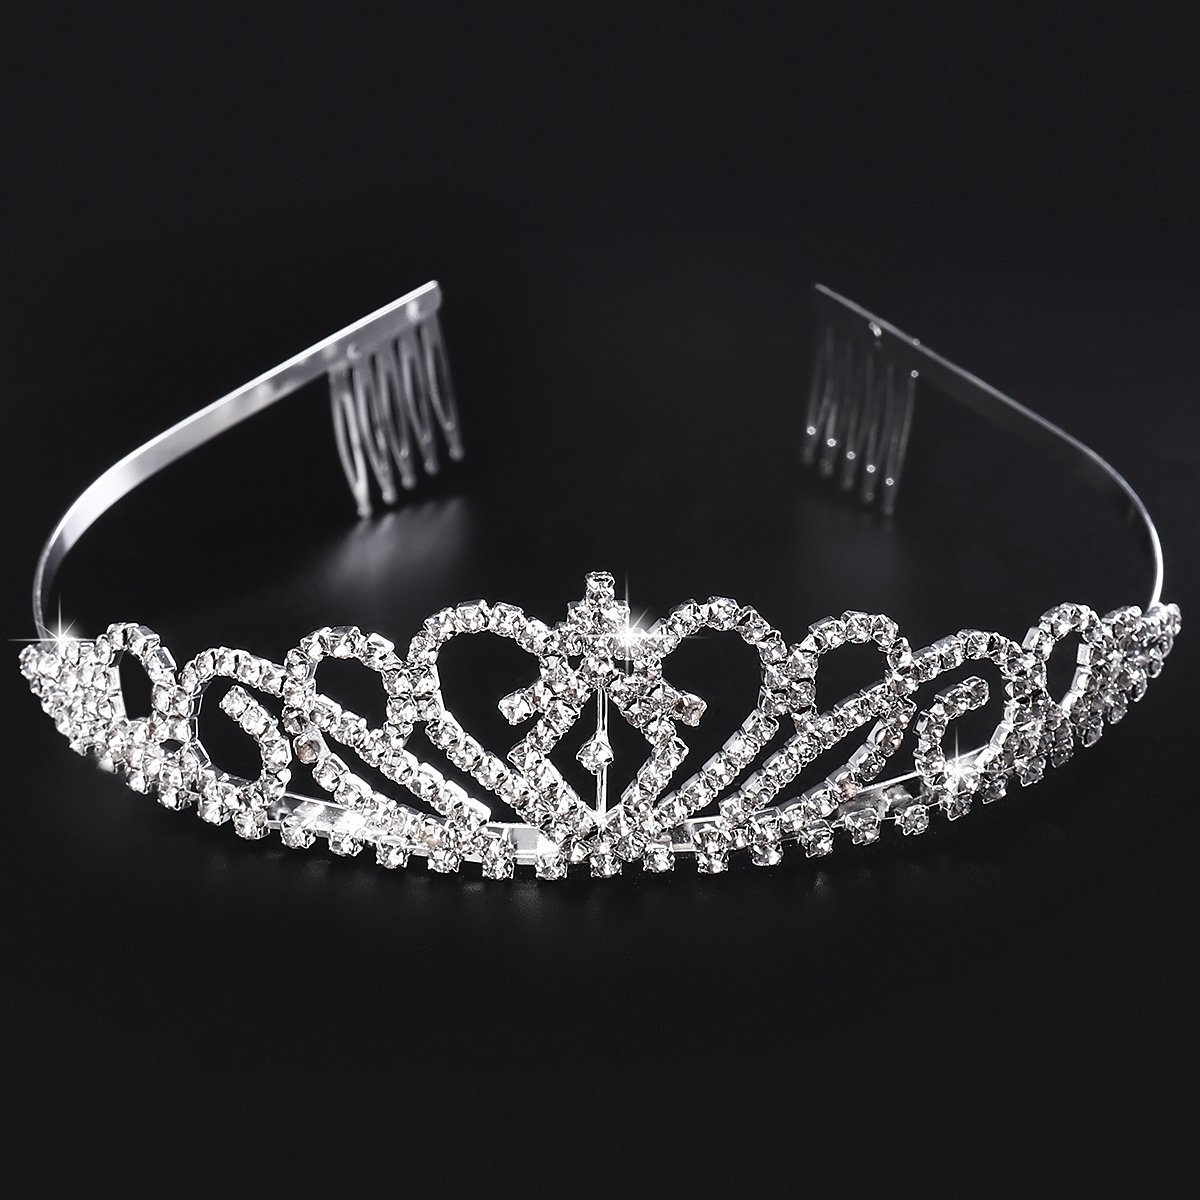 Tiara Crown, Crystal Rhinestones Wedding Tiara Headband Comb Pin for Wedding Birthday Party, 2 Pack